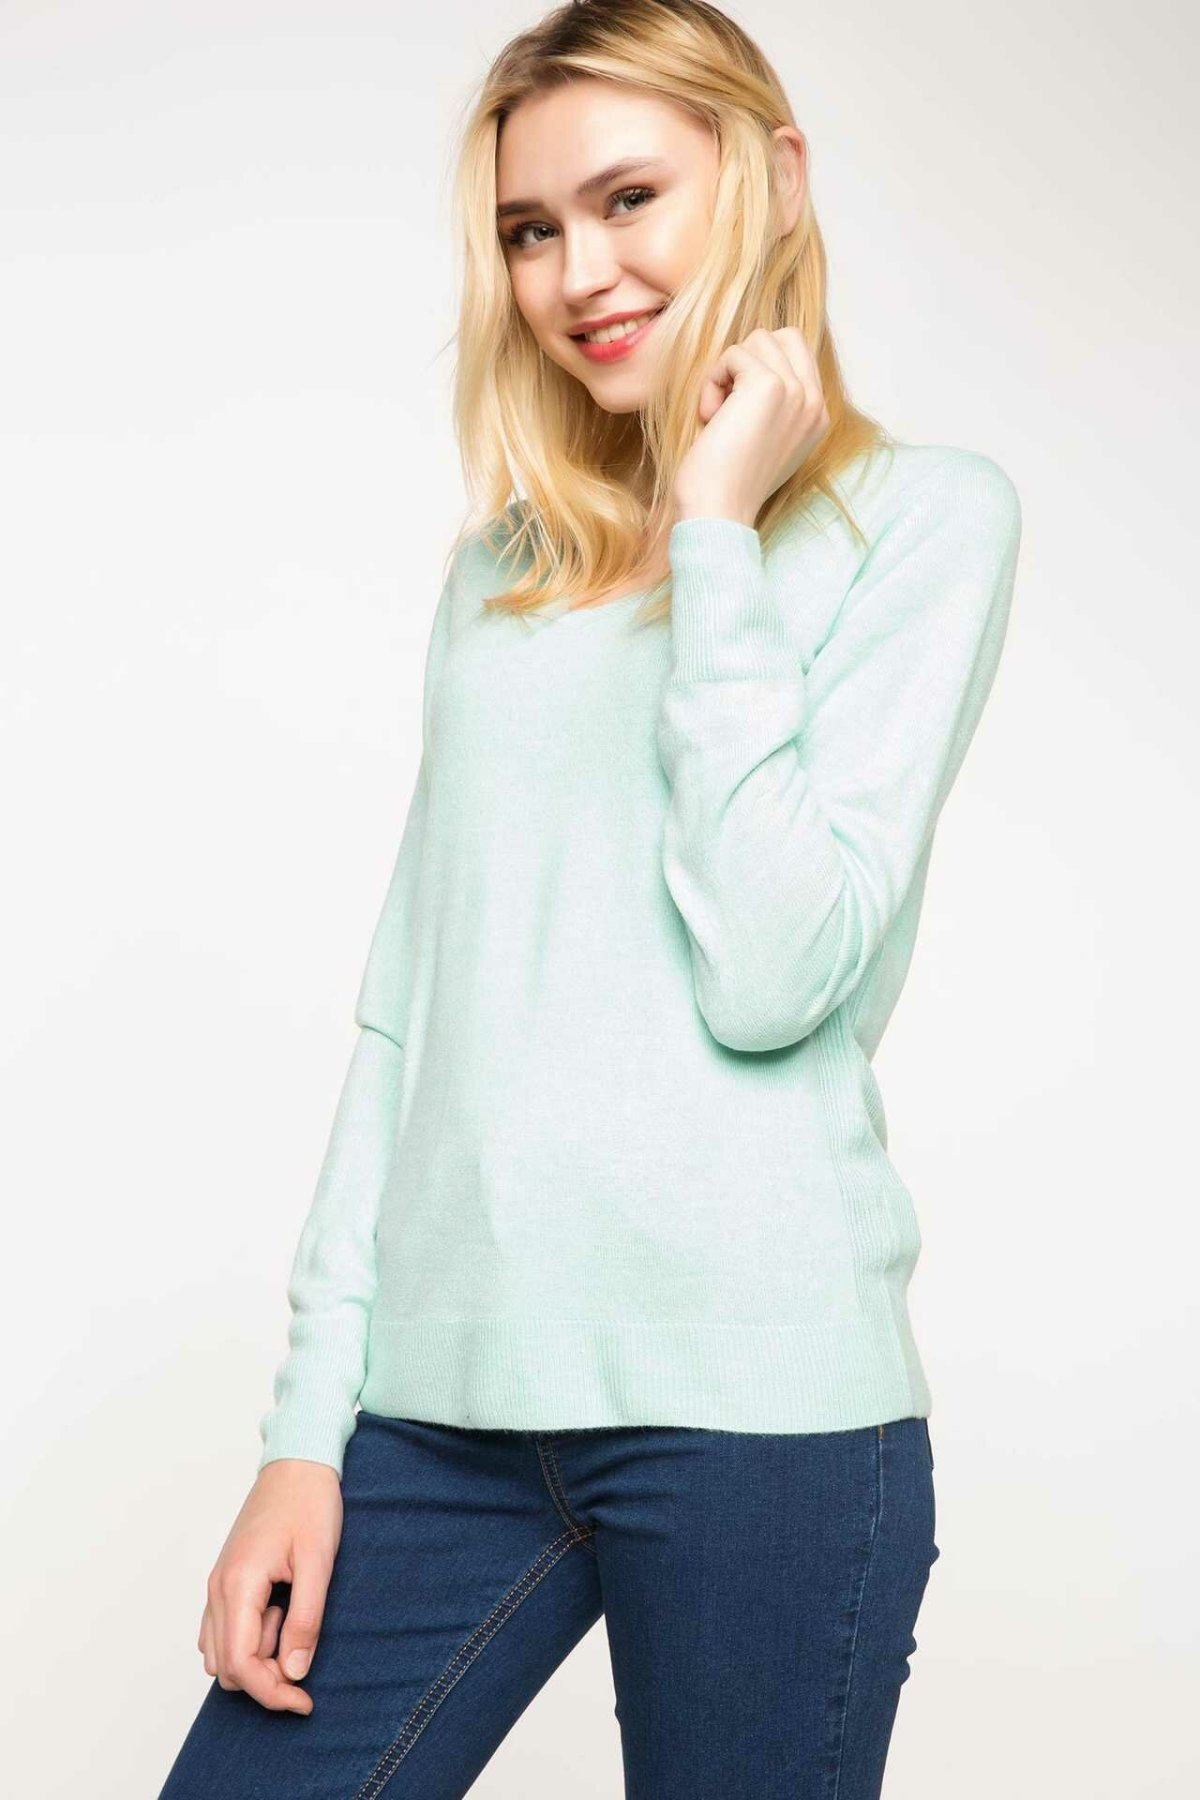 DeFacto Woman Fashion V-neck Pullovers Long Sleeves Pure Color Casual Knitted Pullovers Women Autumn New - F7088AZ17AU